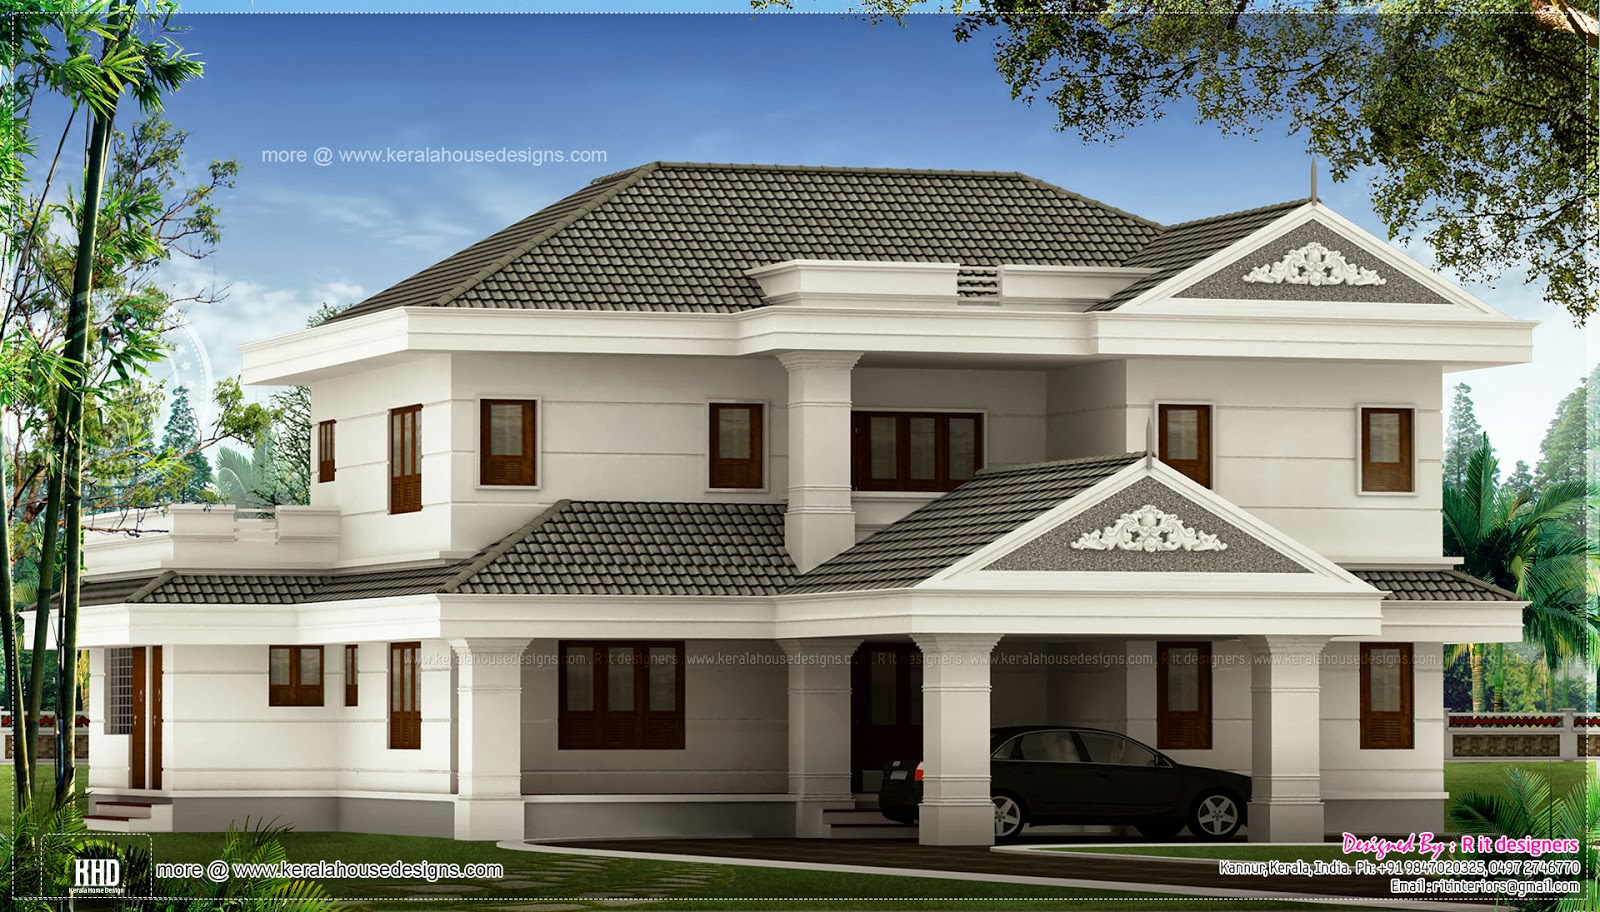 Kerala 5 lakhs house joy studio design gallery best design for Low cost kerala veedu plans